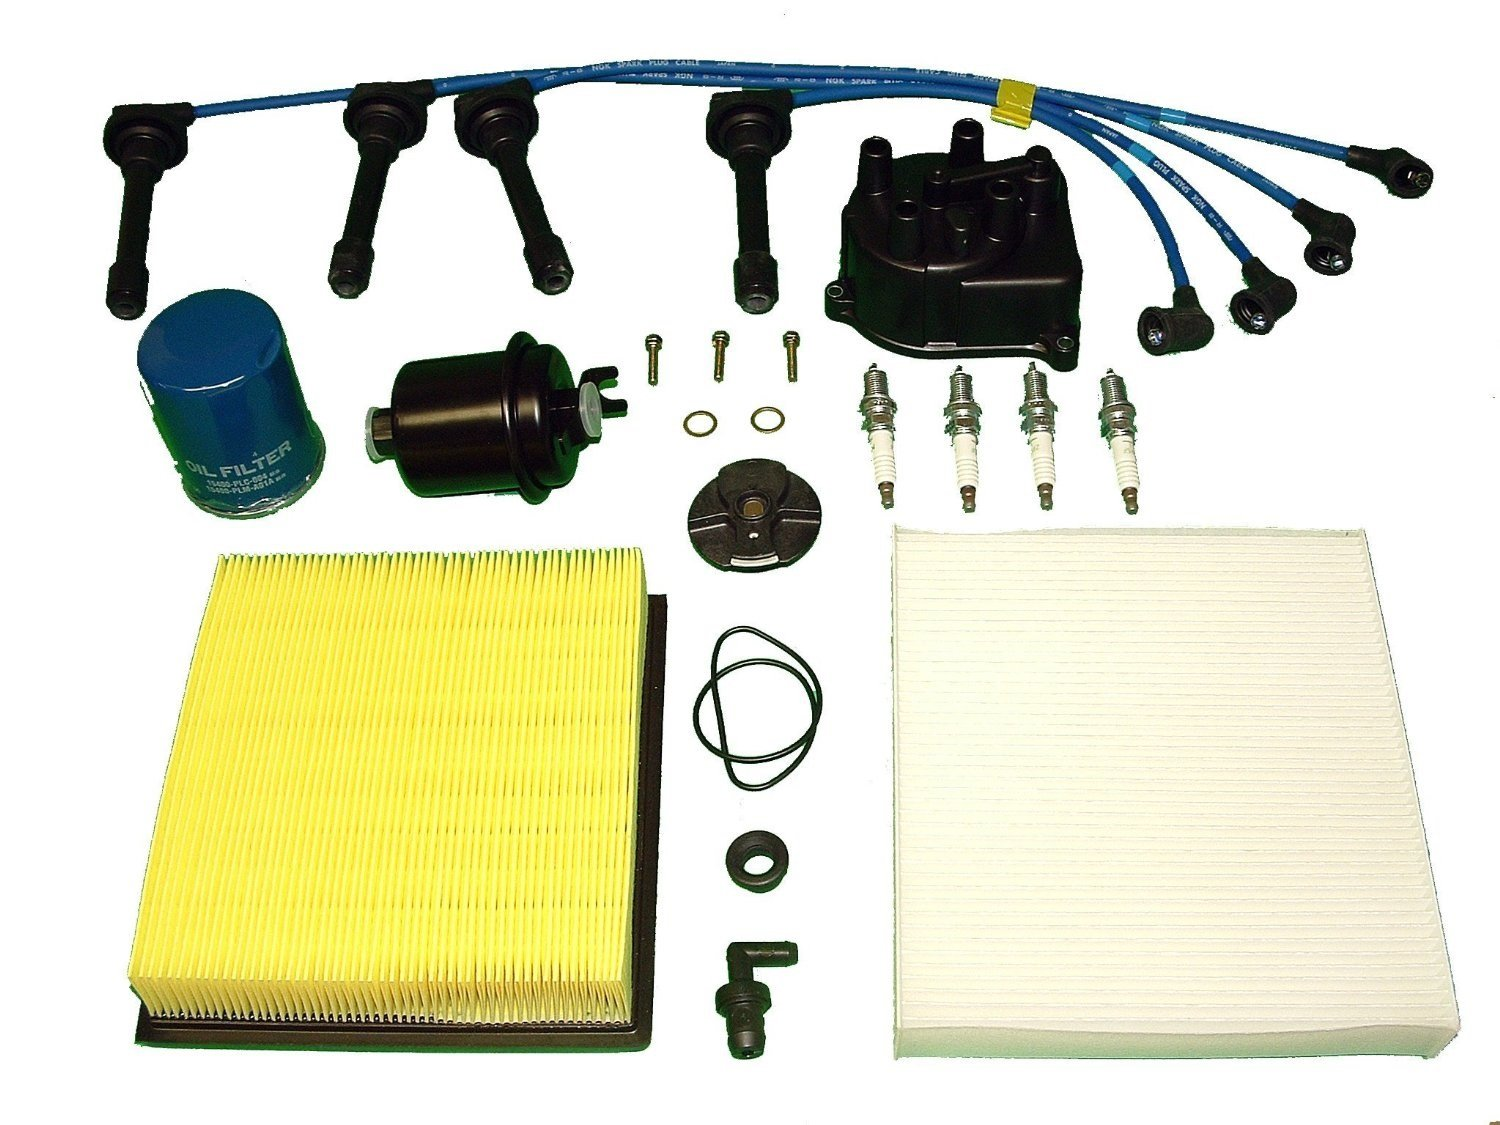 Tune Up Kit Replacement ForHonda CRV 2000-2001 AIR FUEL OIL FILTERS CAP ROTOR NGK PLUGS & WIRES PCV VALVE AND PCV VALVE GROMMET by TBK Timing Belt Kit